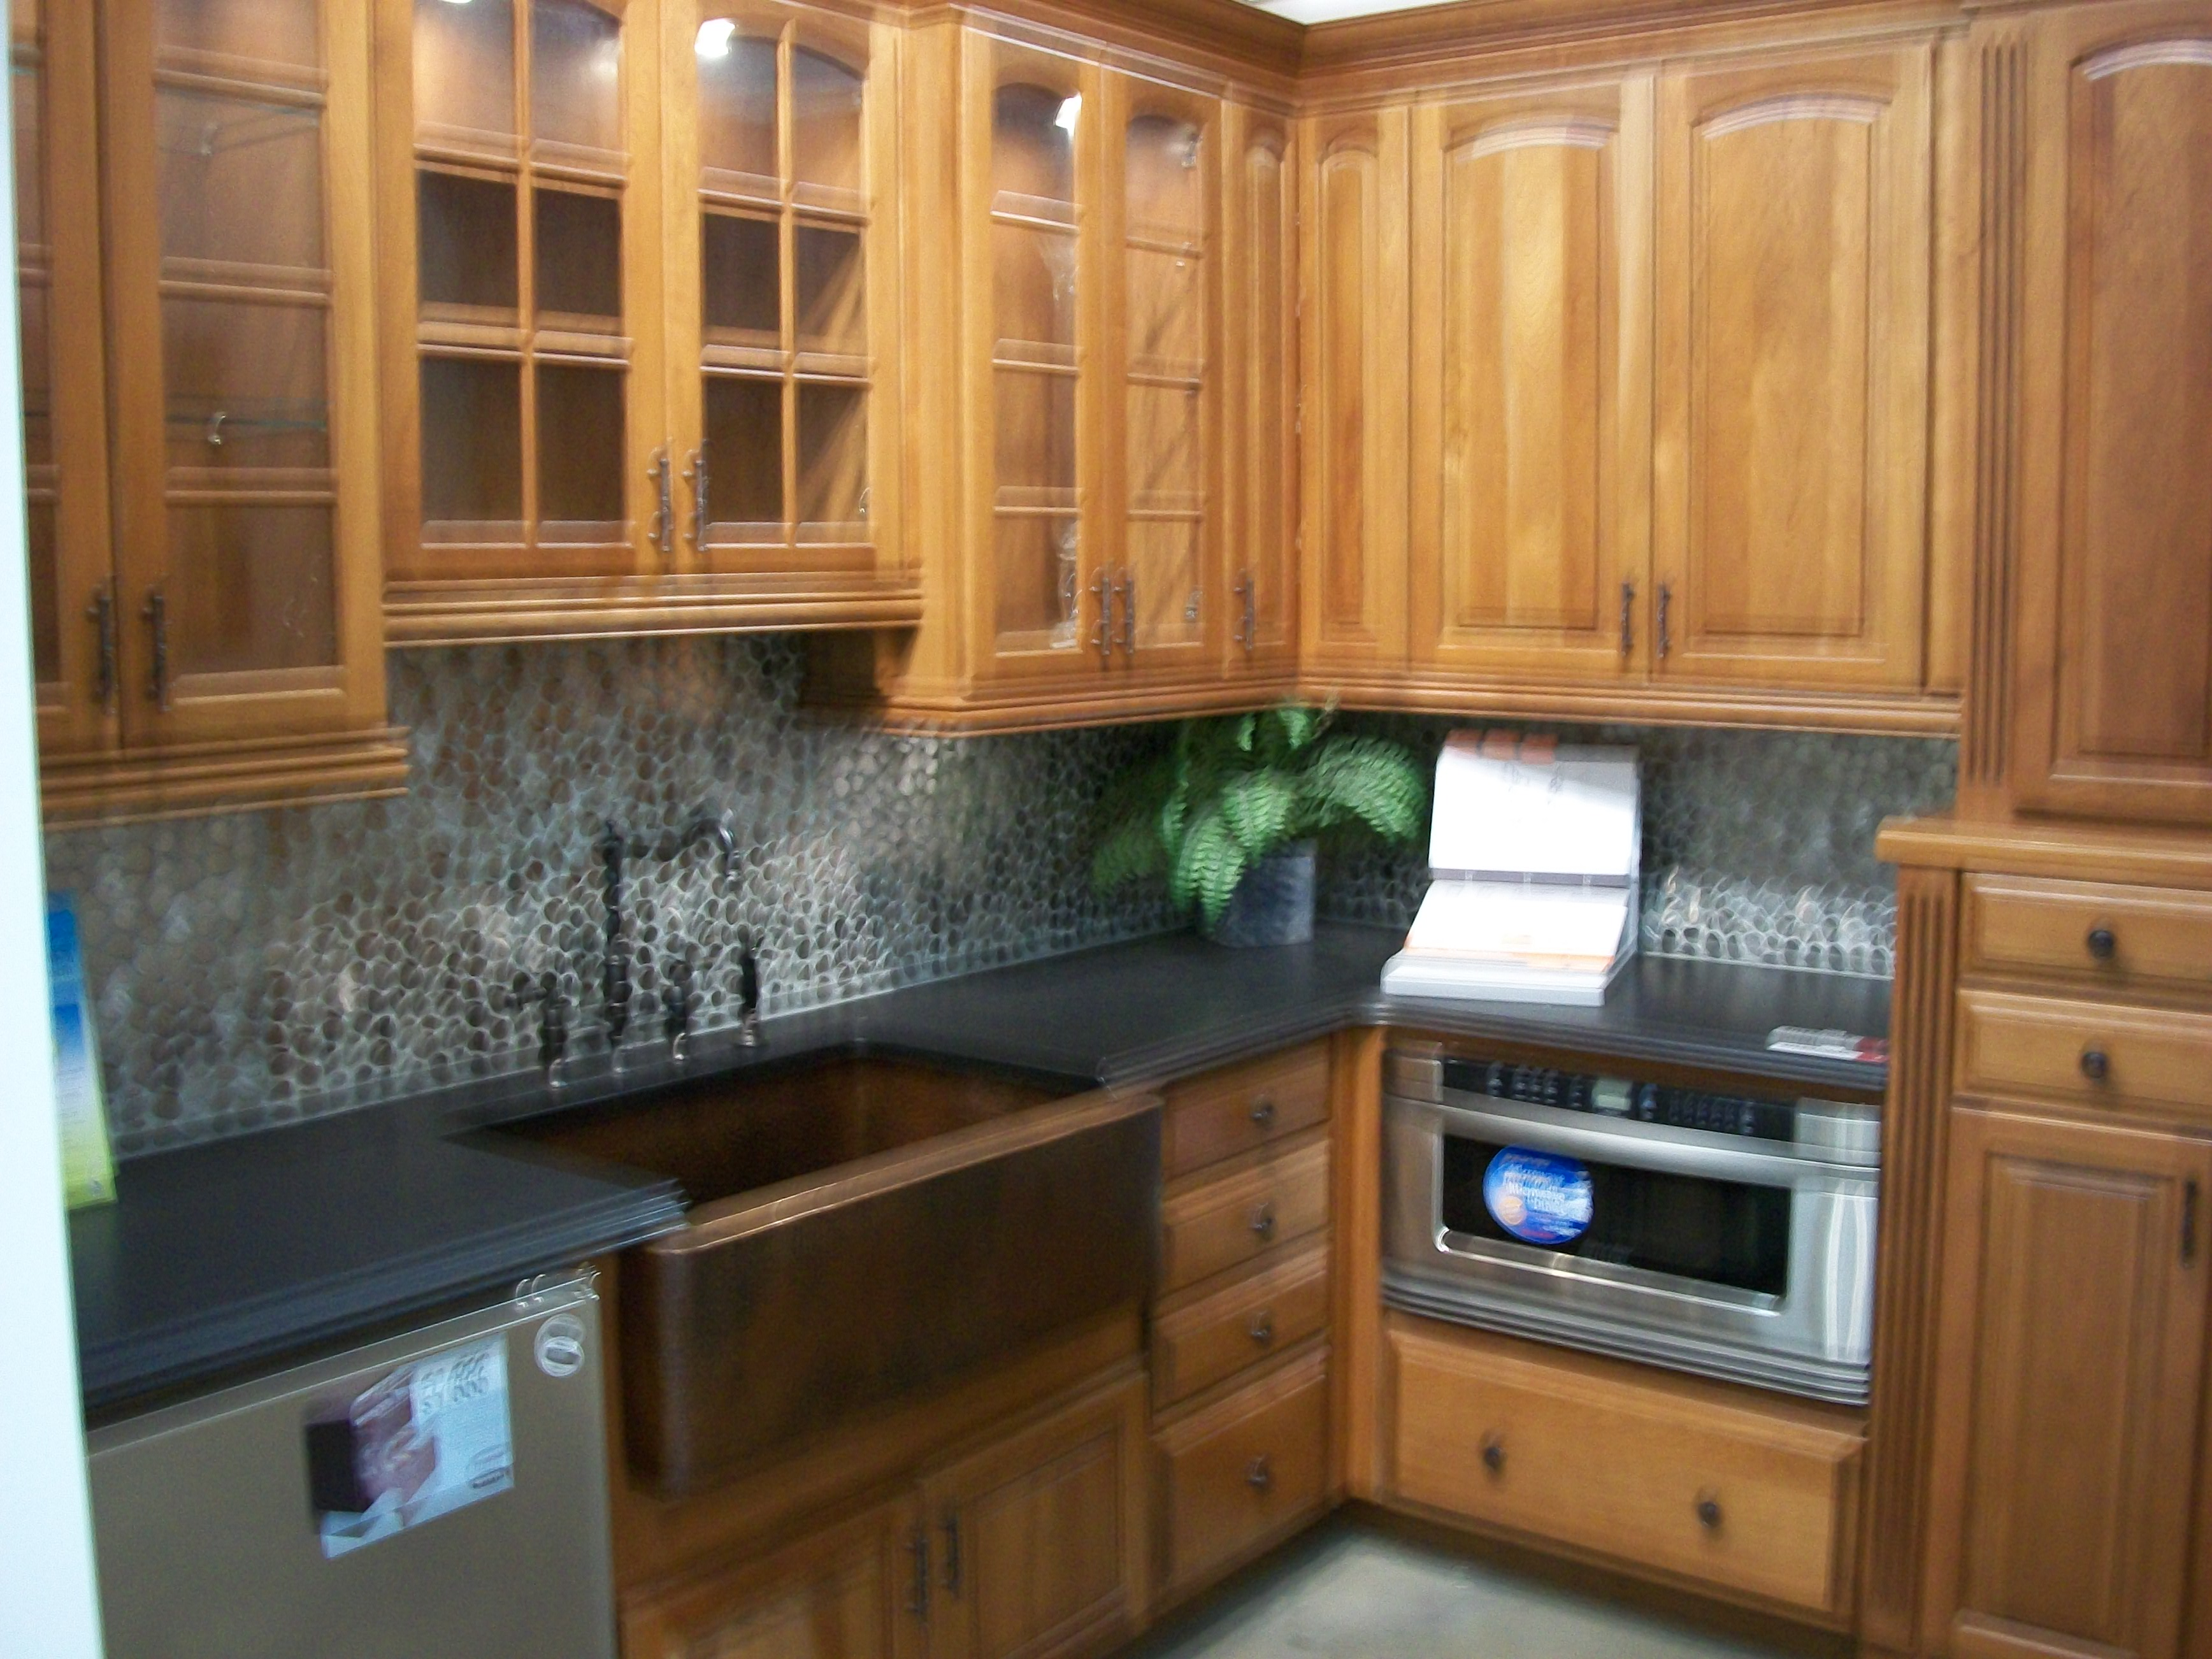 File kitchen cabinet display 2009 with for I kitchen cabinet